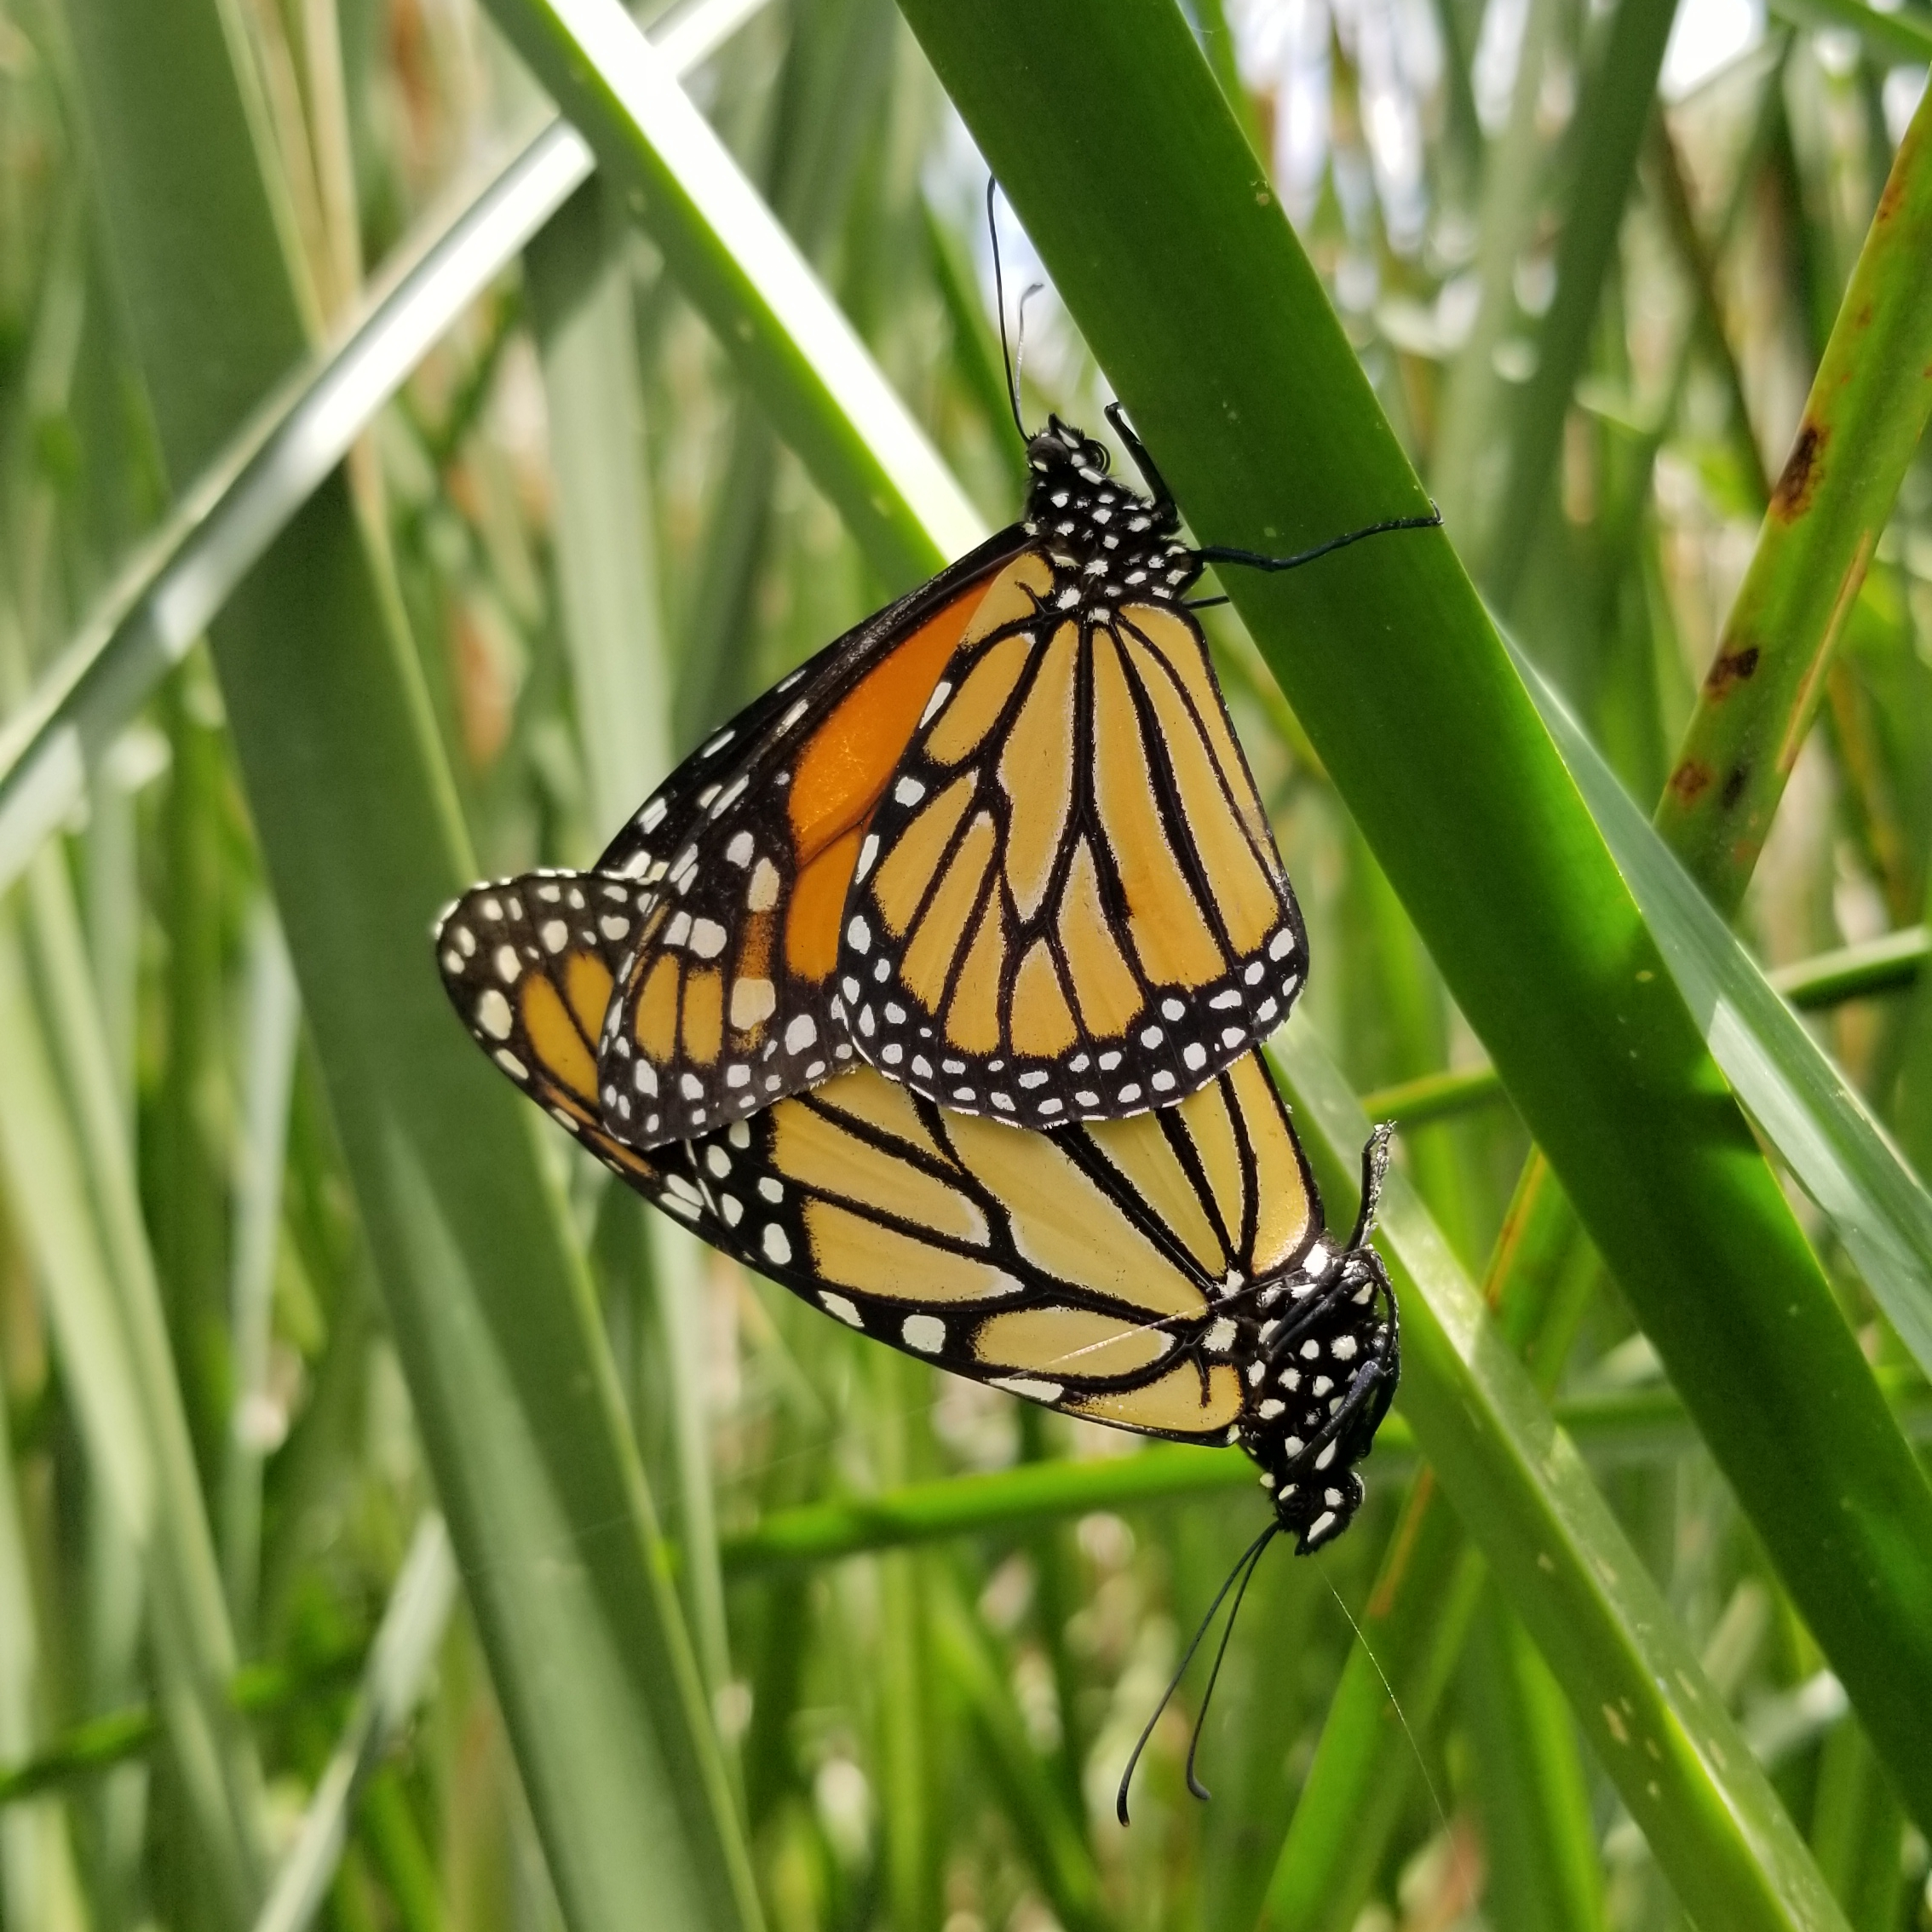 Two monarchs' wings entwine a bit as they stand rear-to-rear, mating on a leaf.